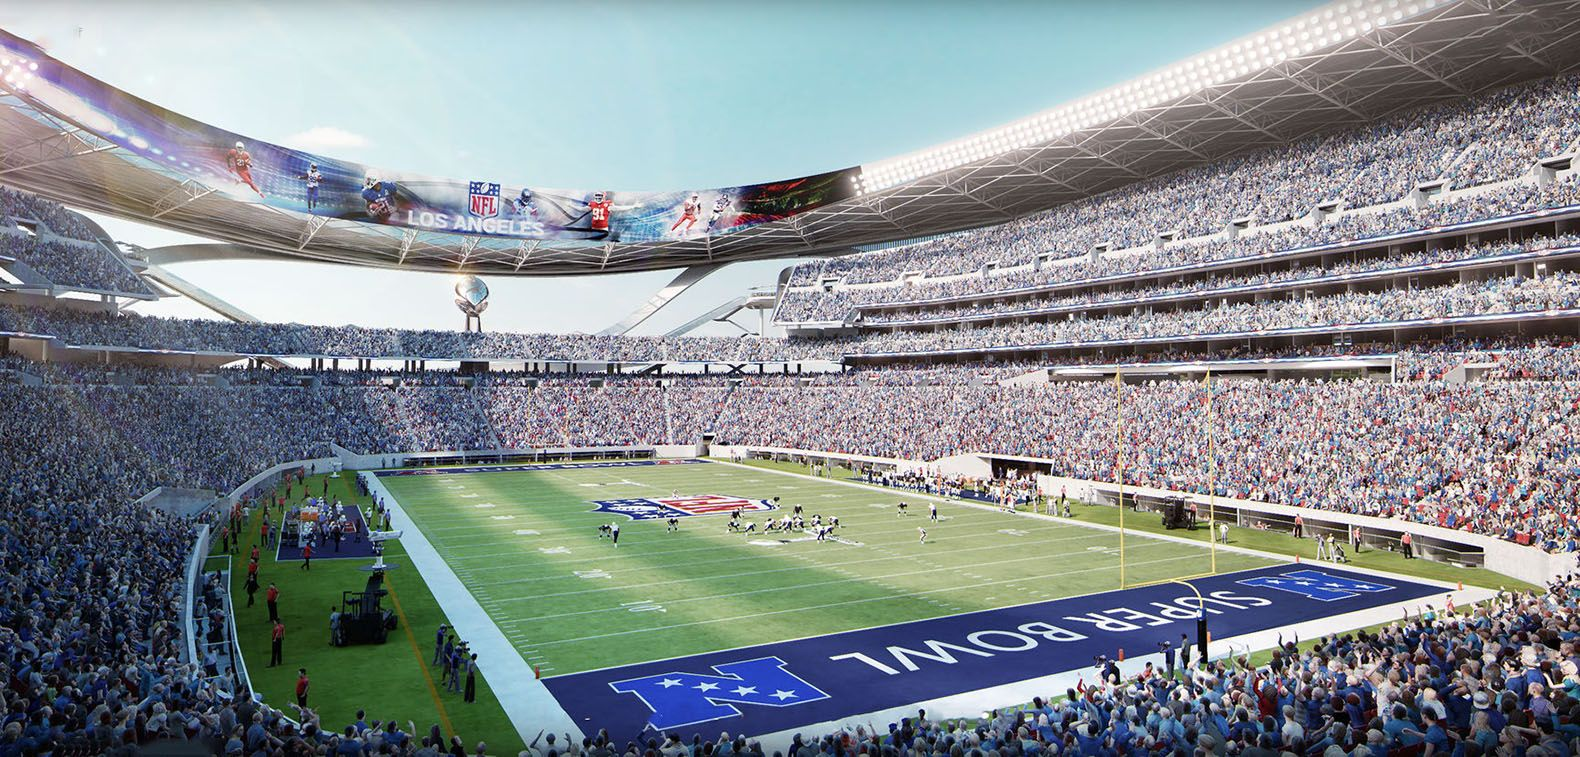 New Chargers And Raiders Stadium Design Features A Farmers Market And Electric Car Charging Stations Stadium Design Stadium Electric Vehicle Charging Station